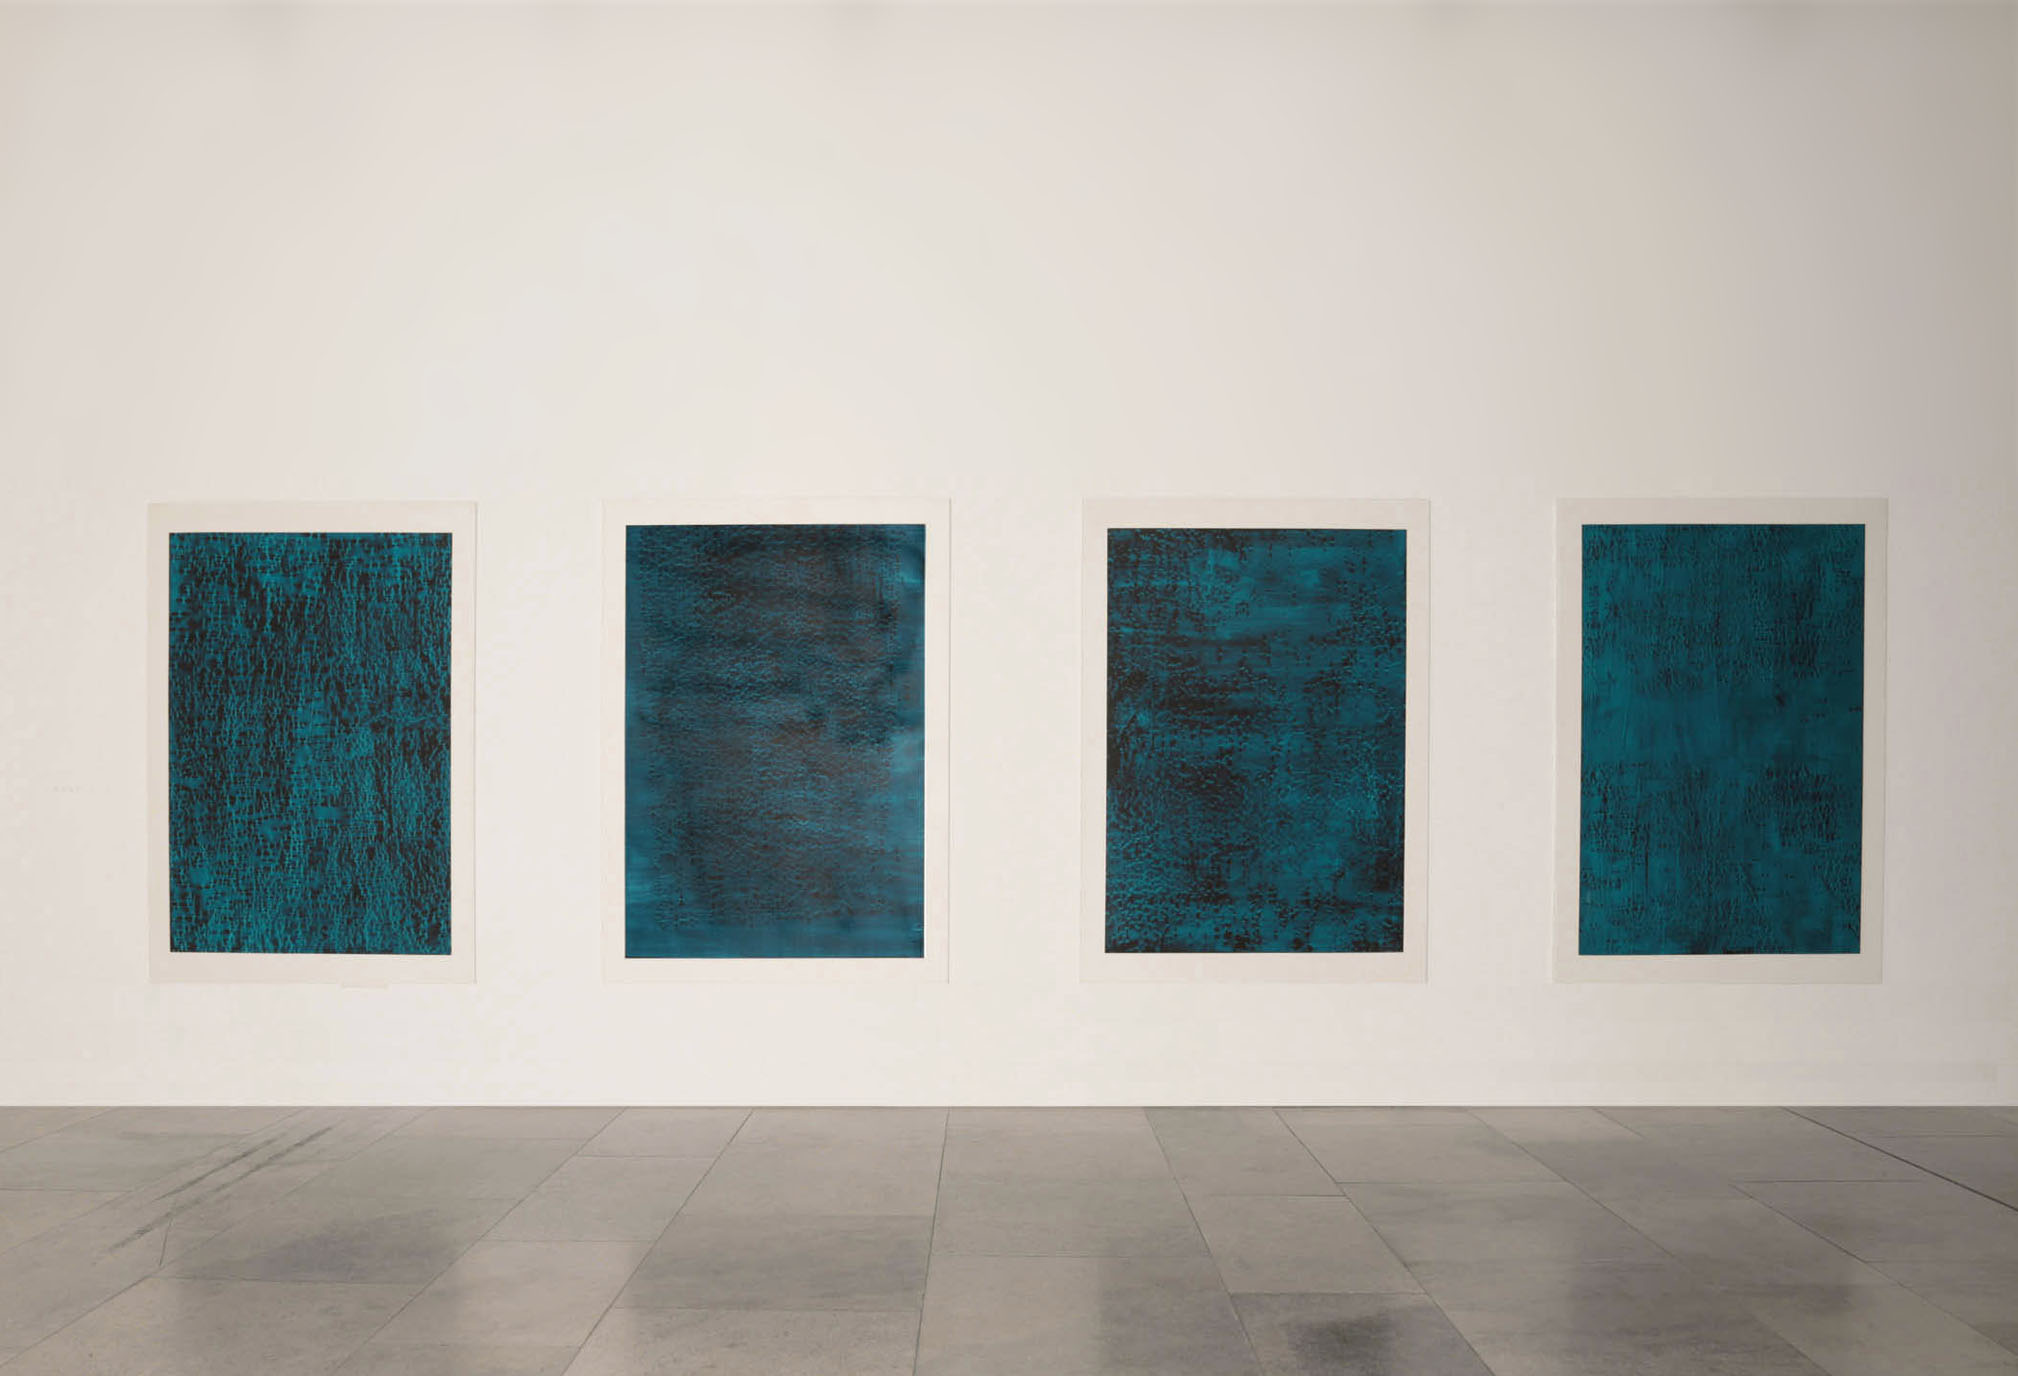 CONTINUOUS NOW – turquoise  series,2012  pigment dispersal on 100% cotton fibre  each piece: 147 x 108 cm  Encounters Take Precedence    The Collection, Lincoln 2012